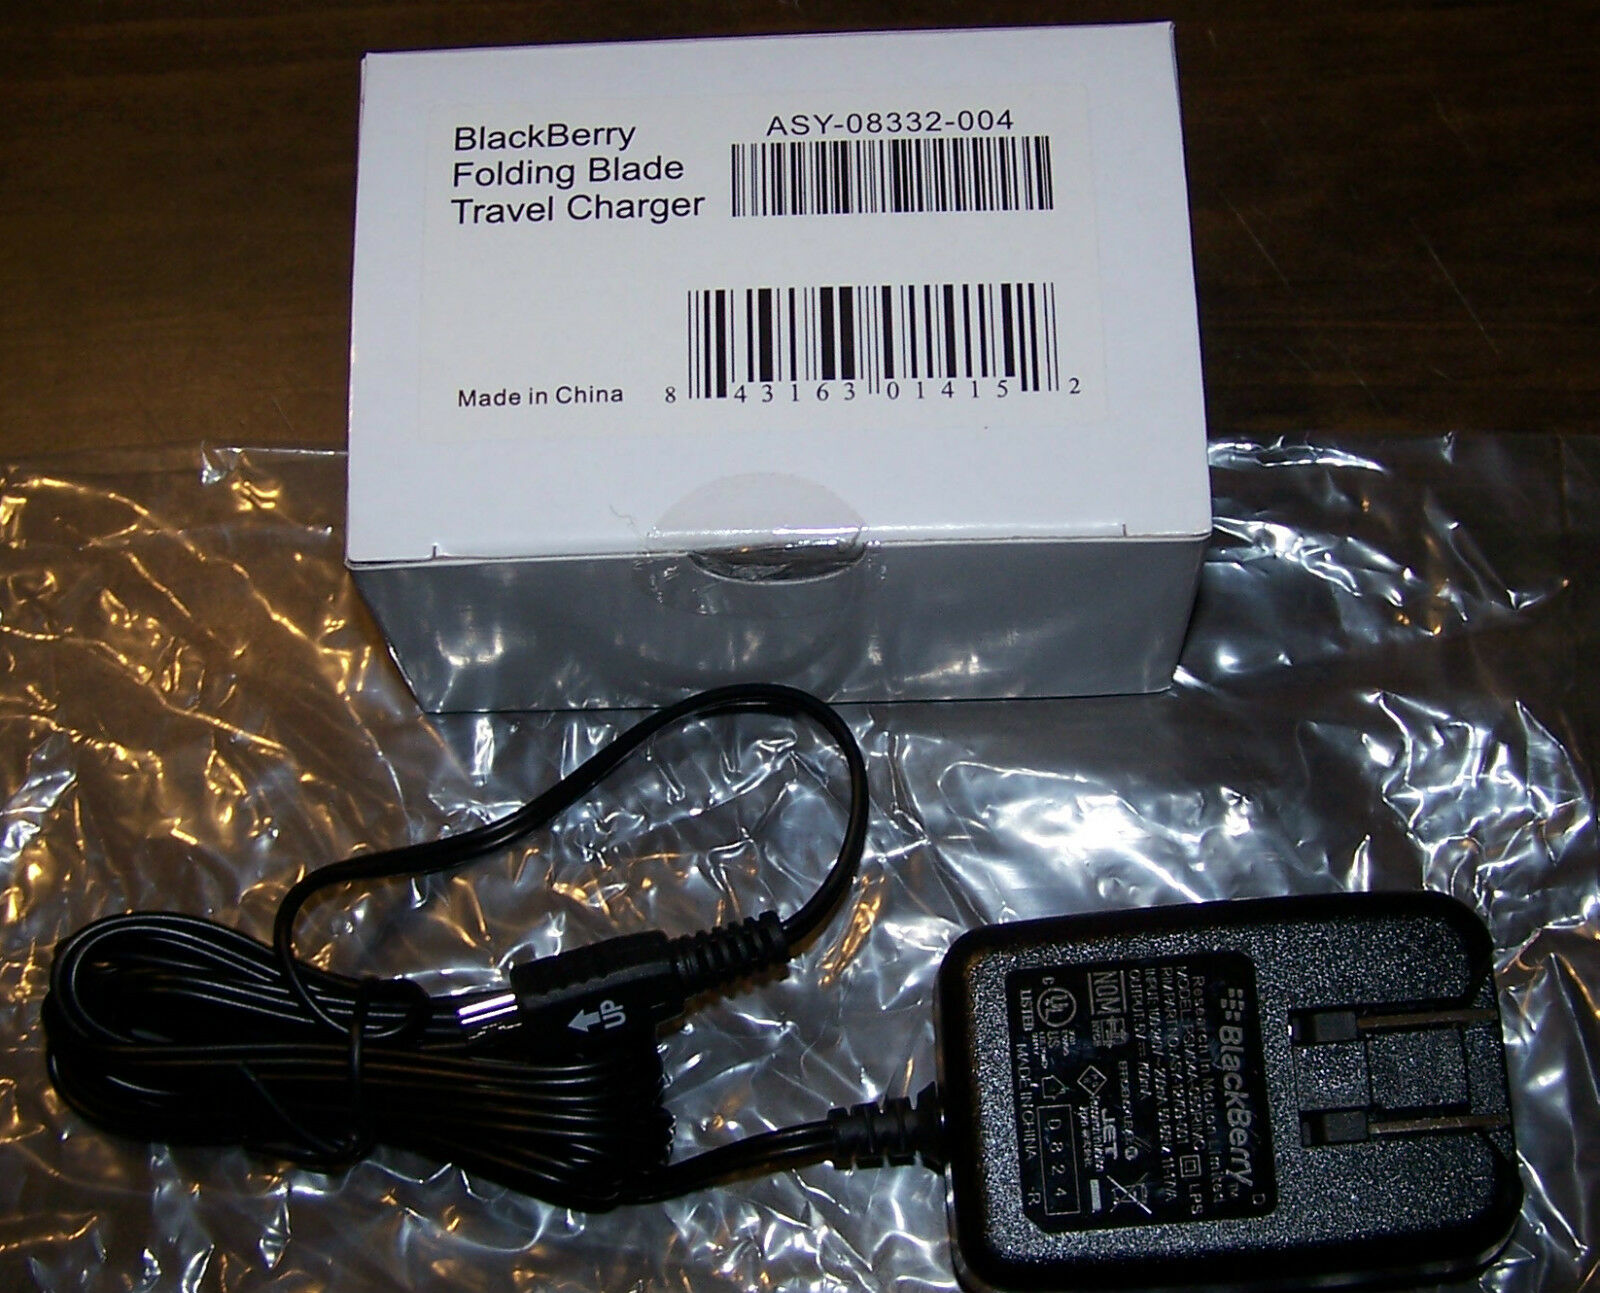 Blackberry Folding Blade Travel Charger Asy-08332-004 - In Original Box